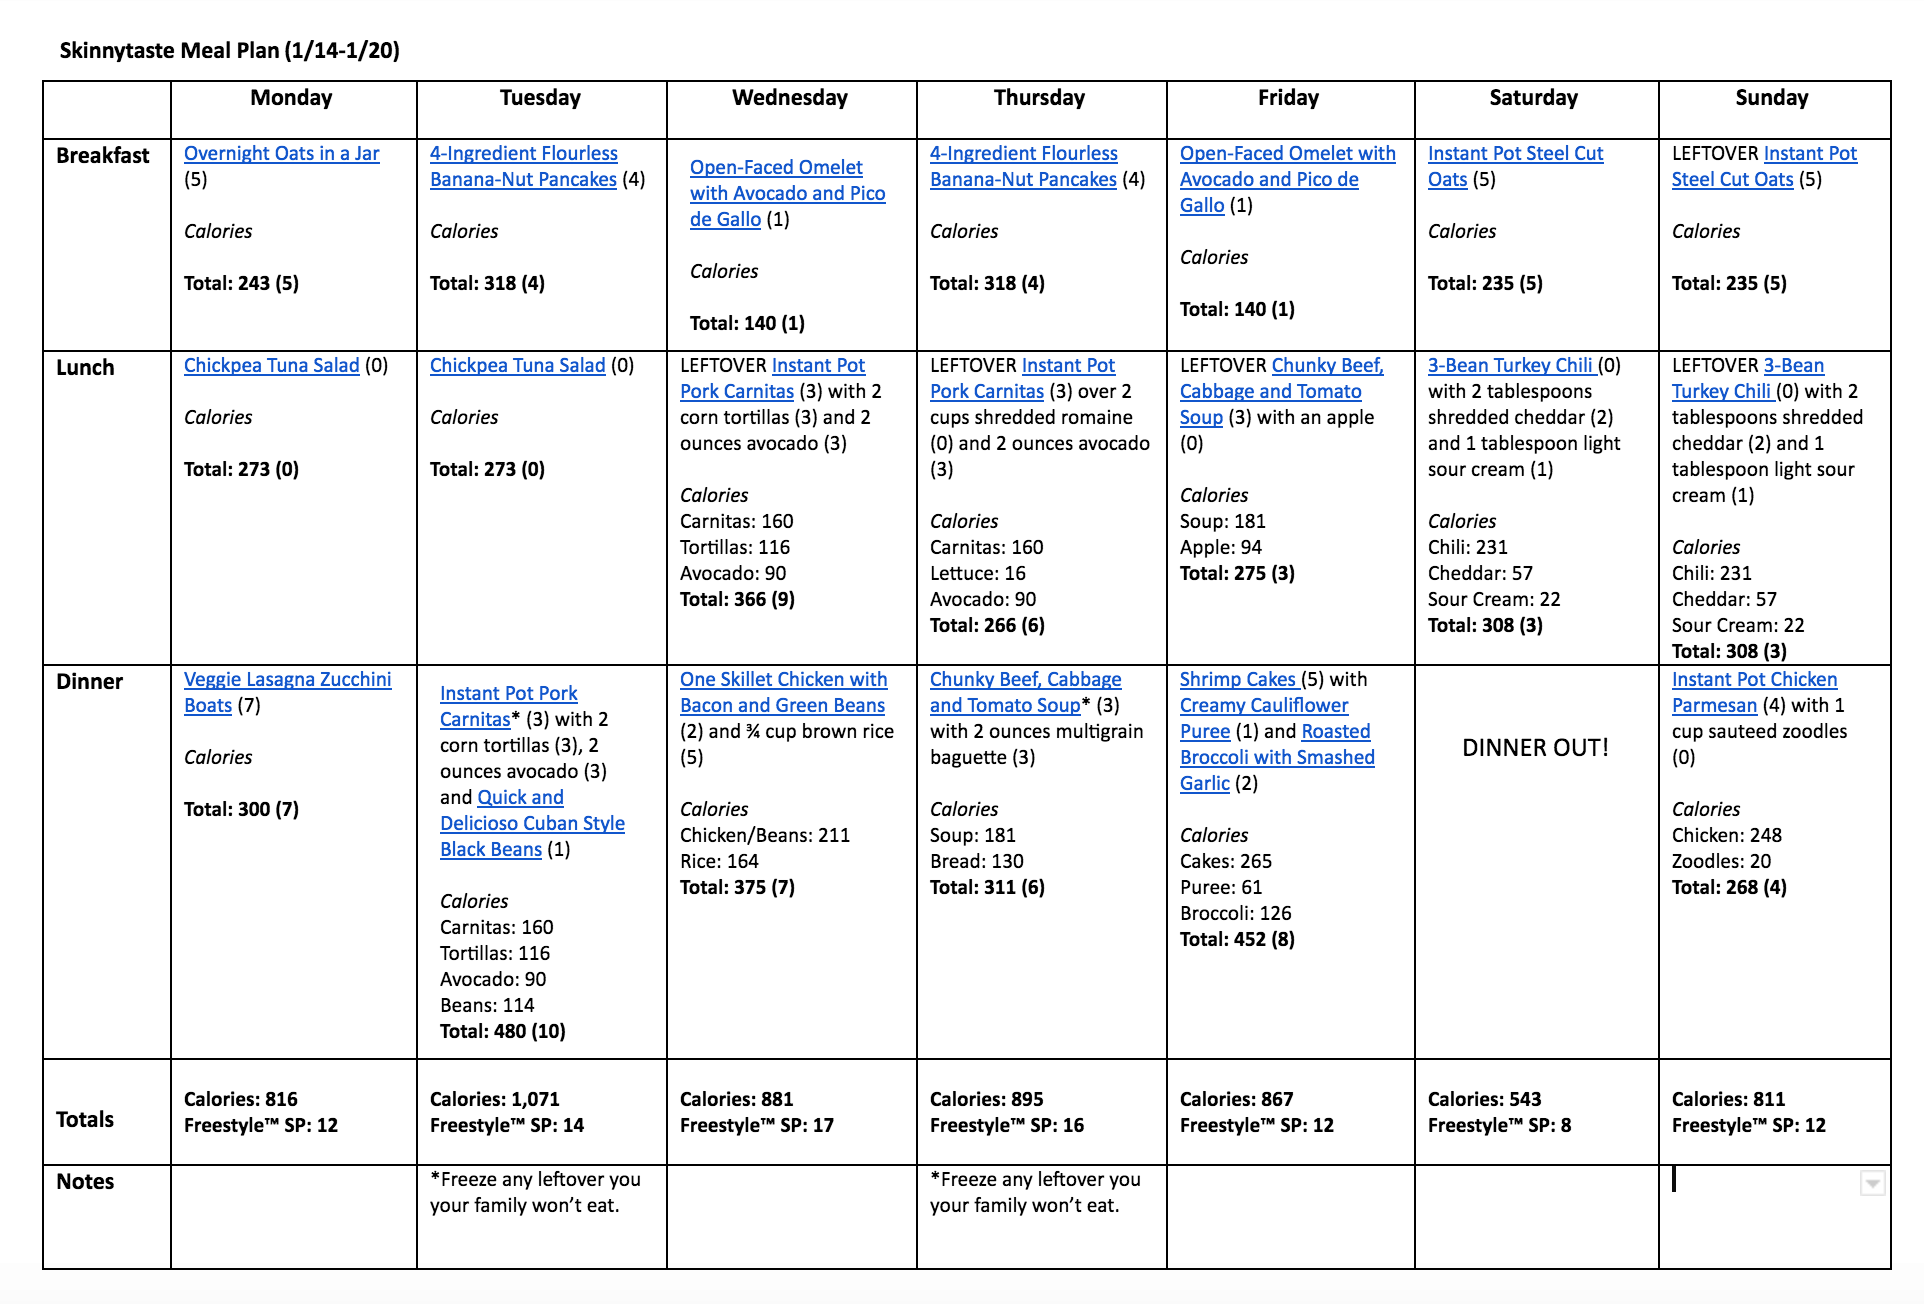 Skinnytaste Meal Plan (January 14-January 20)